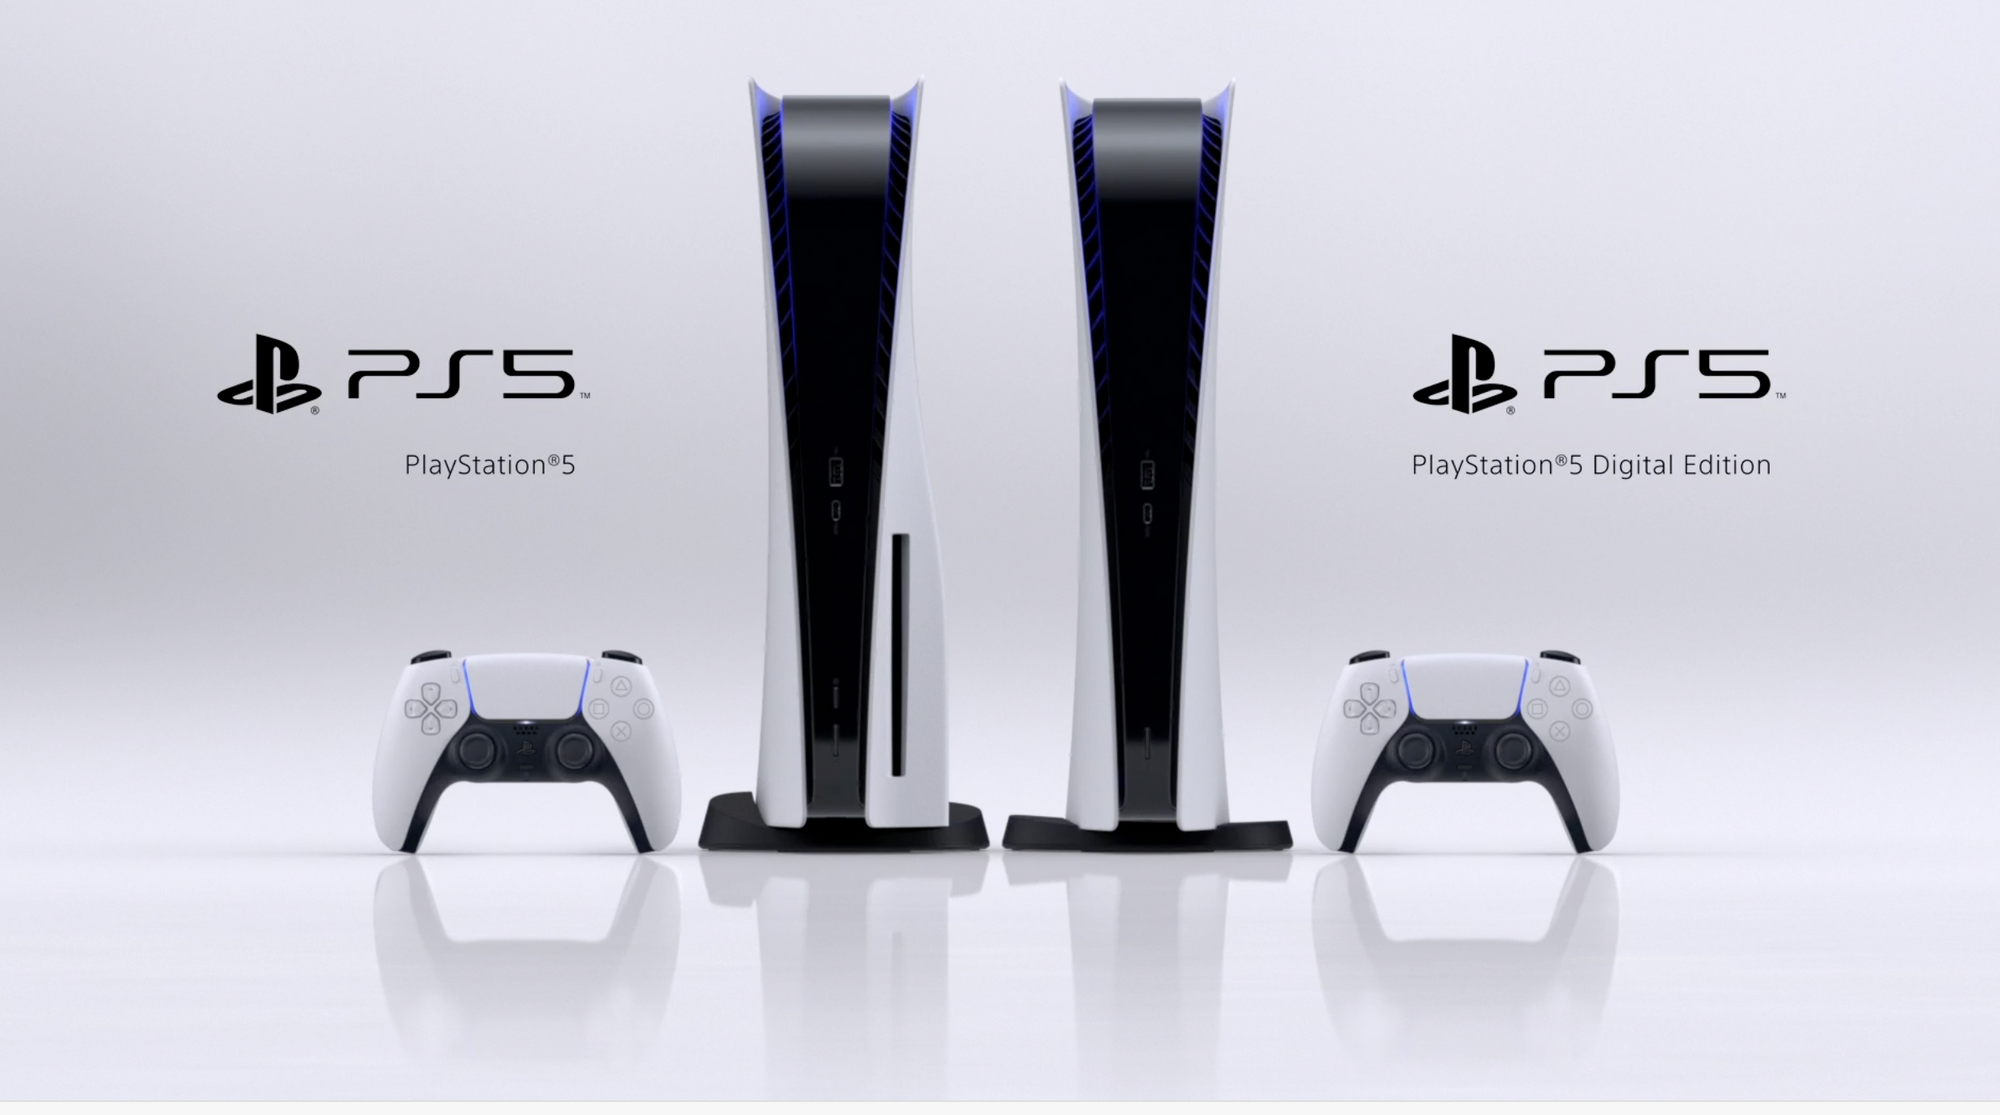 Two PlayStation 5 consoles, one with a disc reader, both with a DualSense next to them.